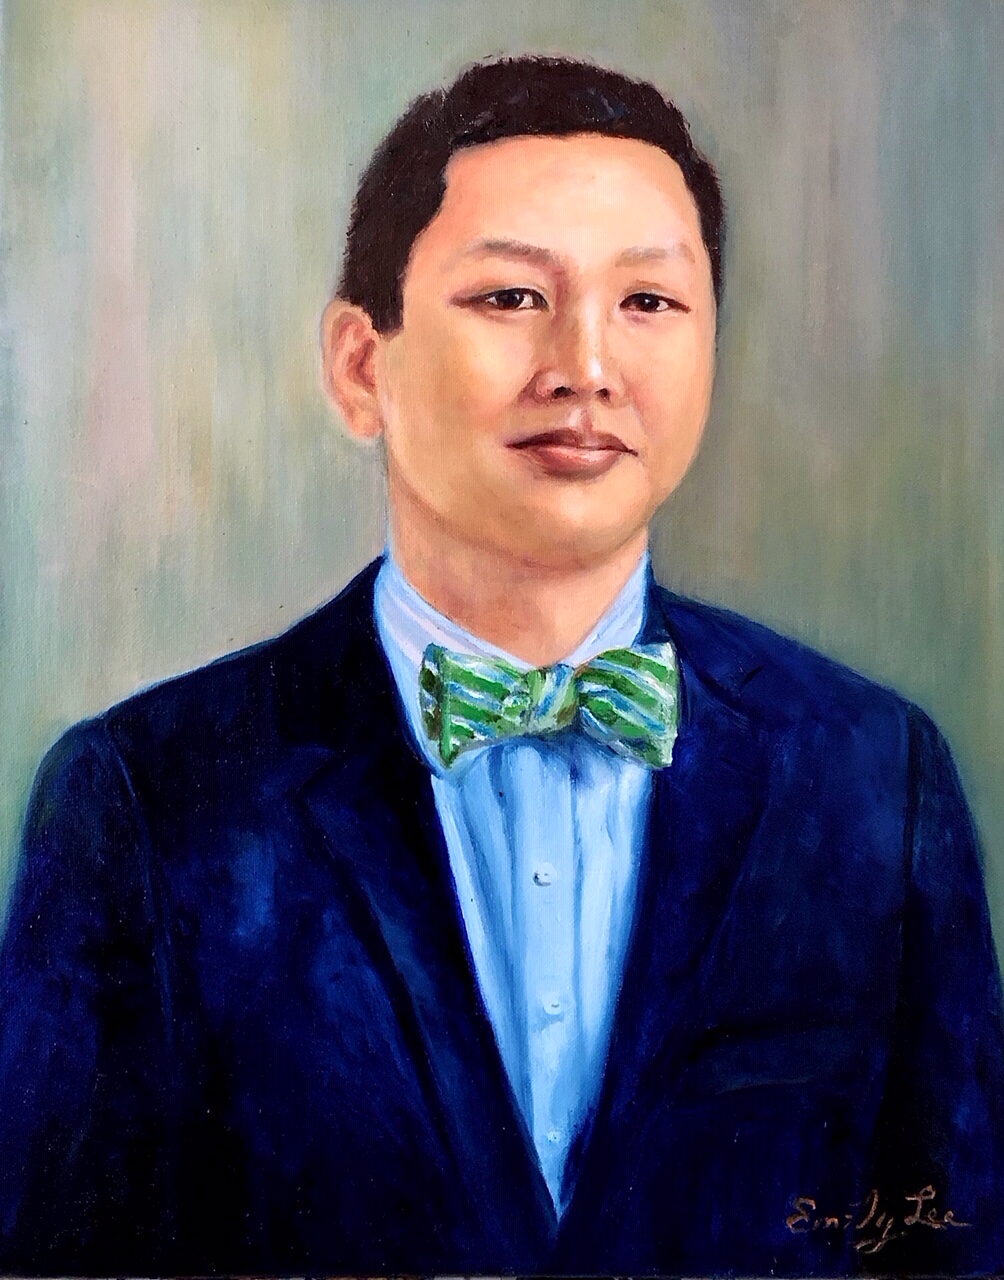 33. Prof. Bernard Travis Lee 李伯寧教授 by Artist 林榮峰 Emily Lee/09/2020